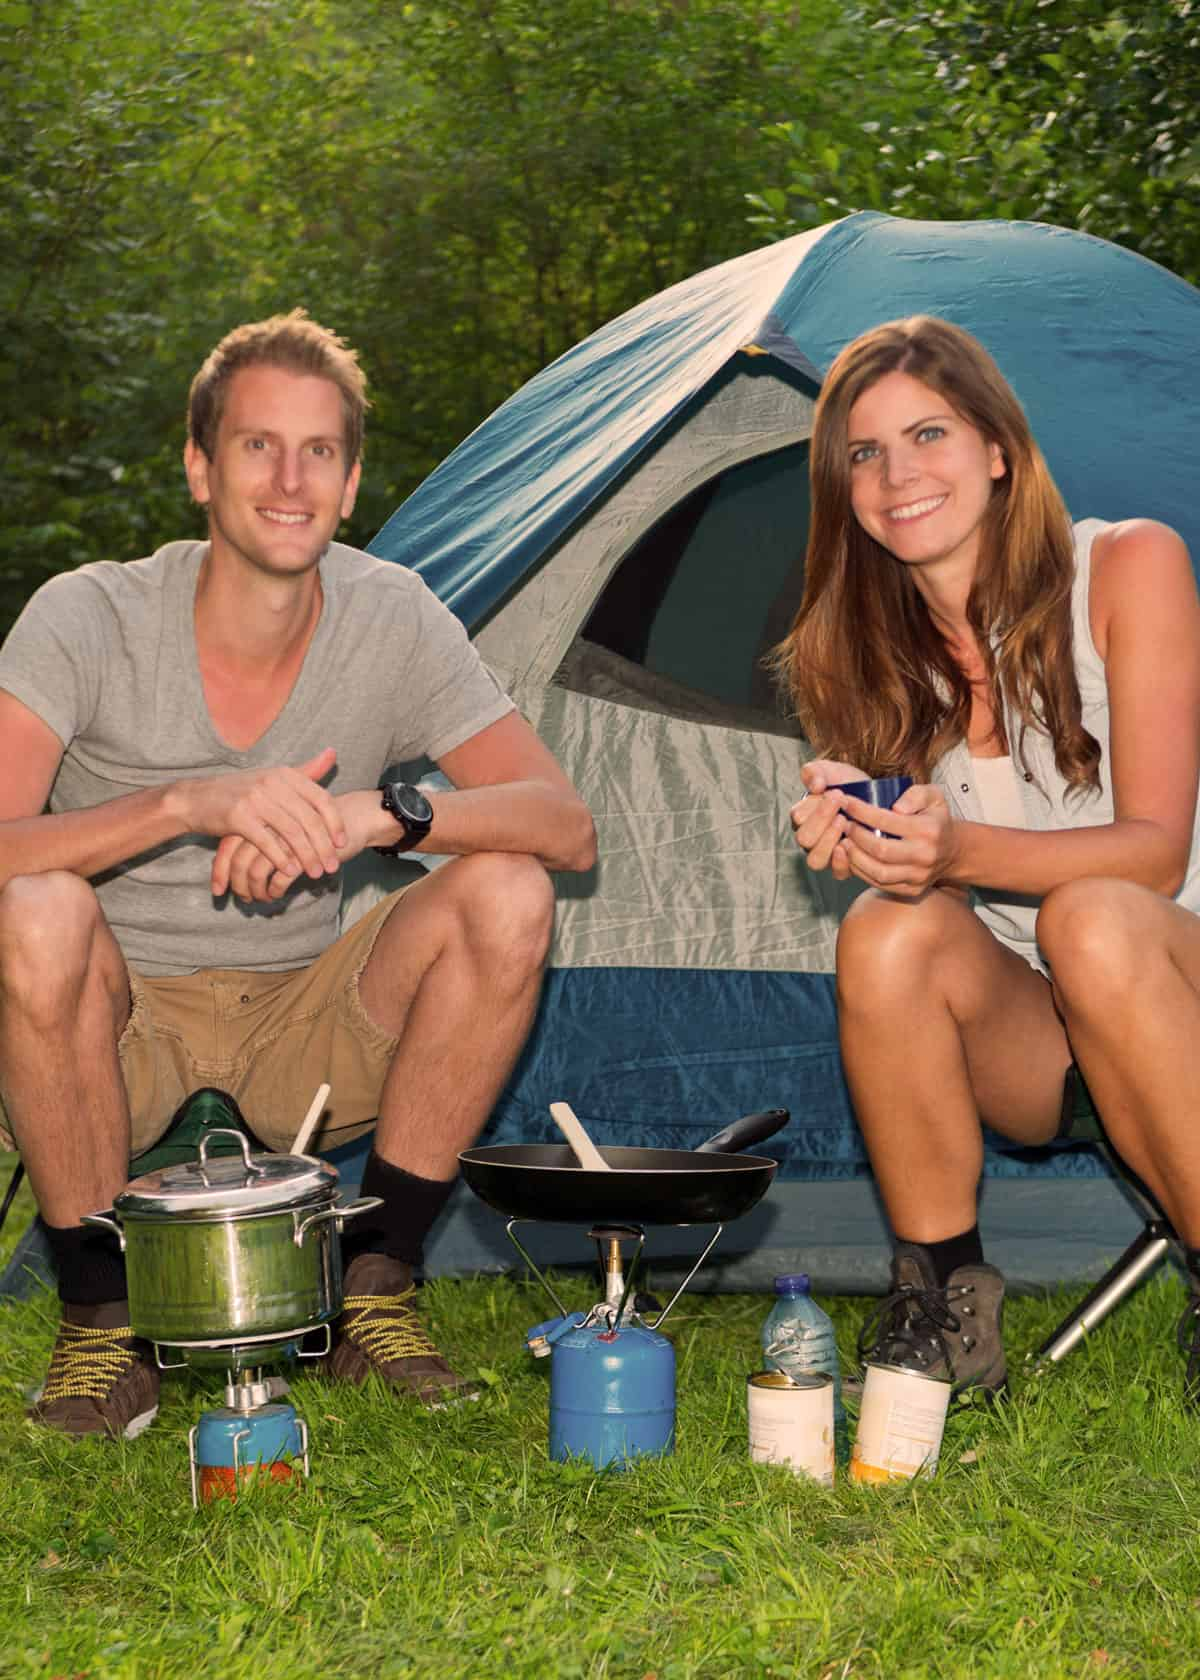 Best stove for camping